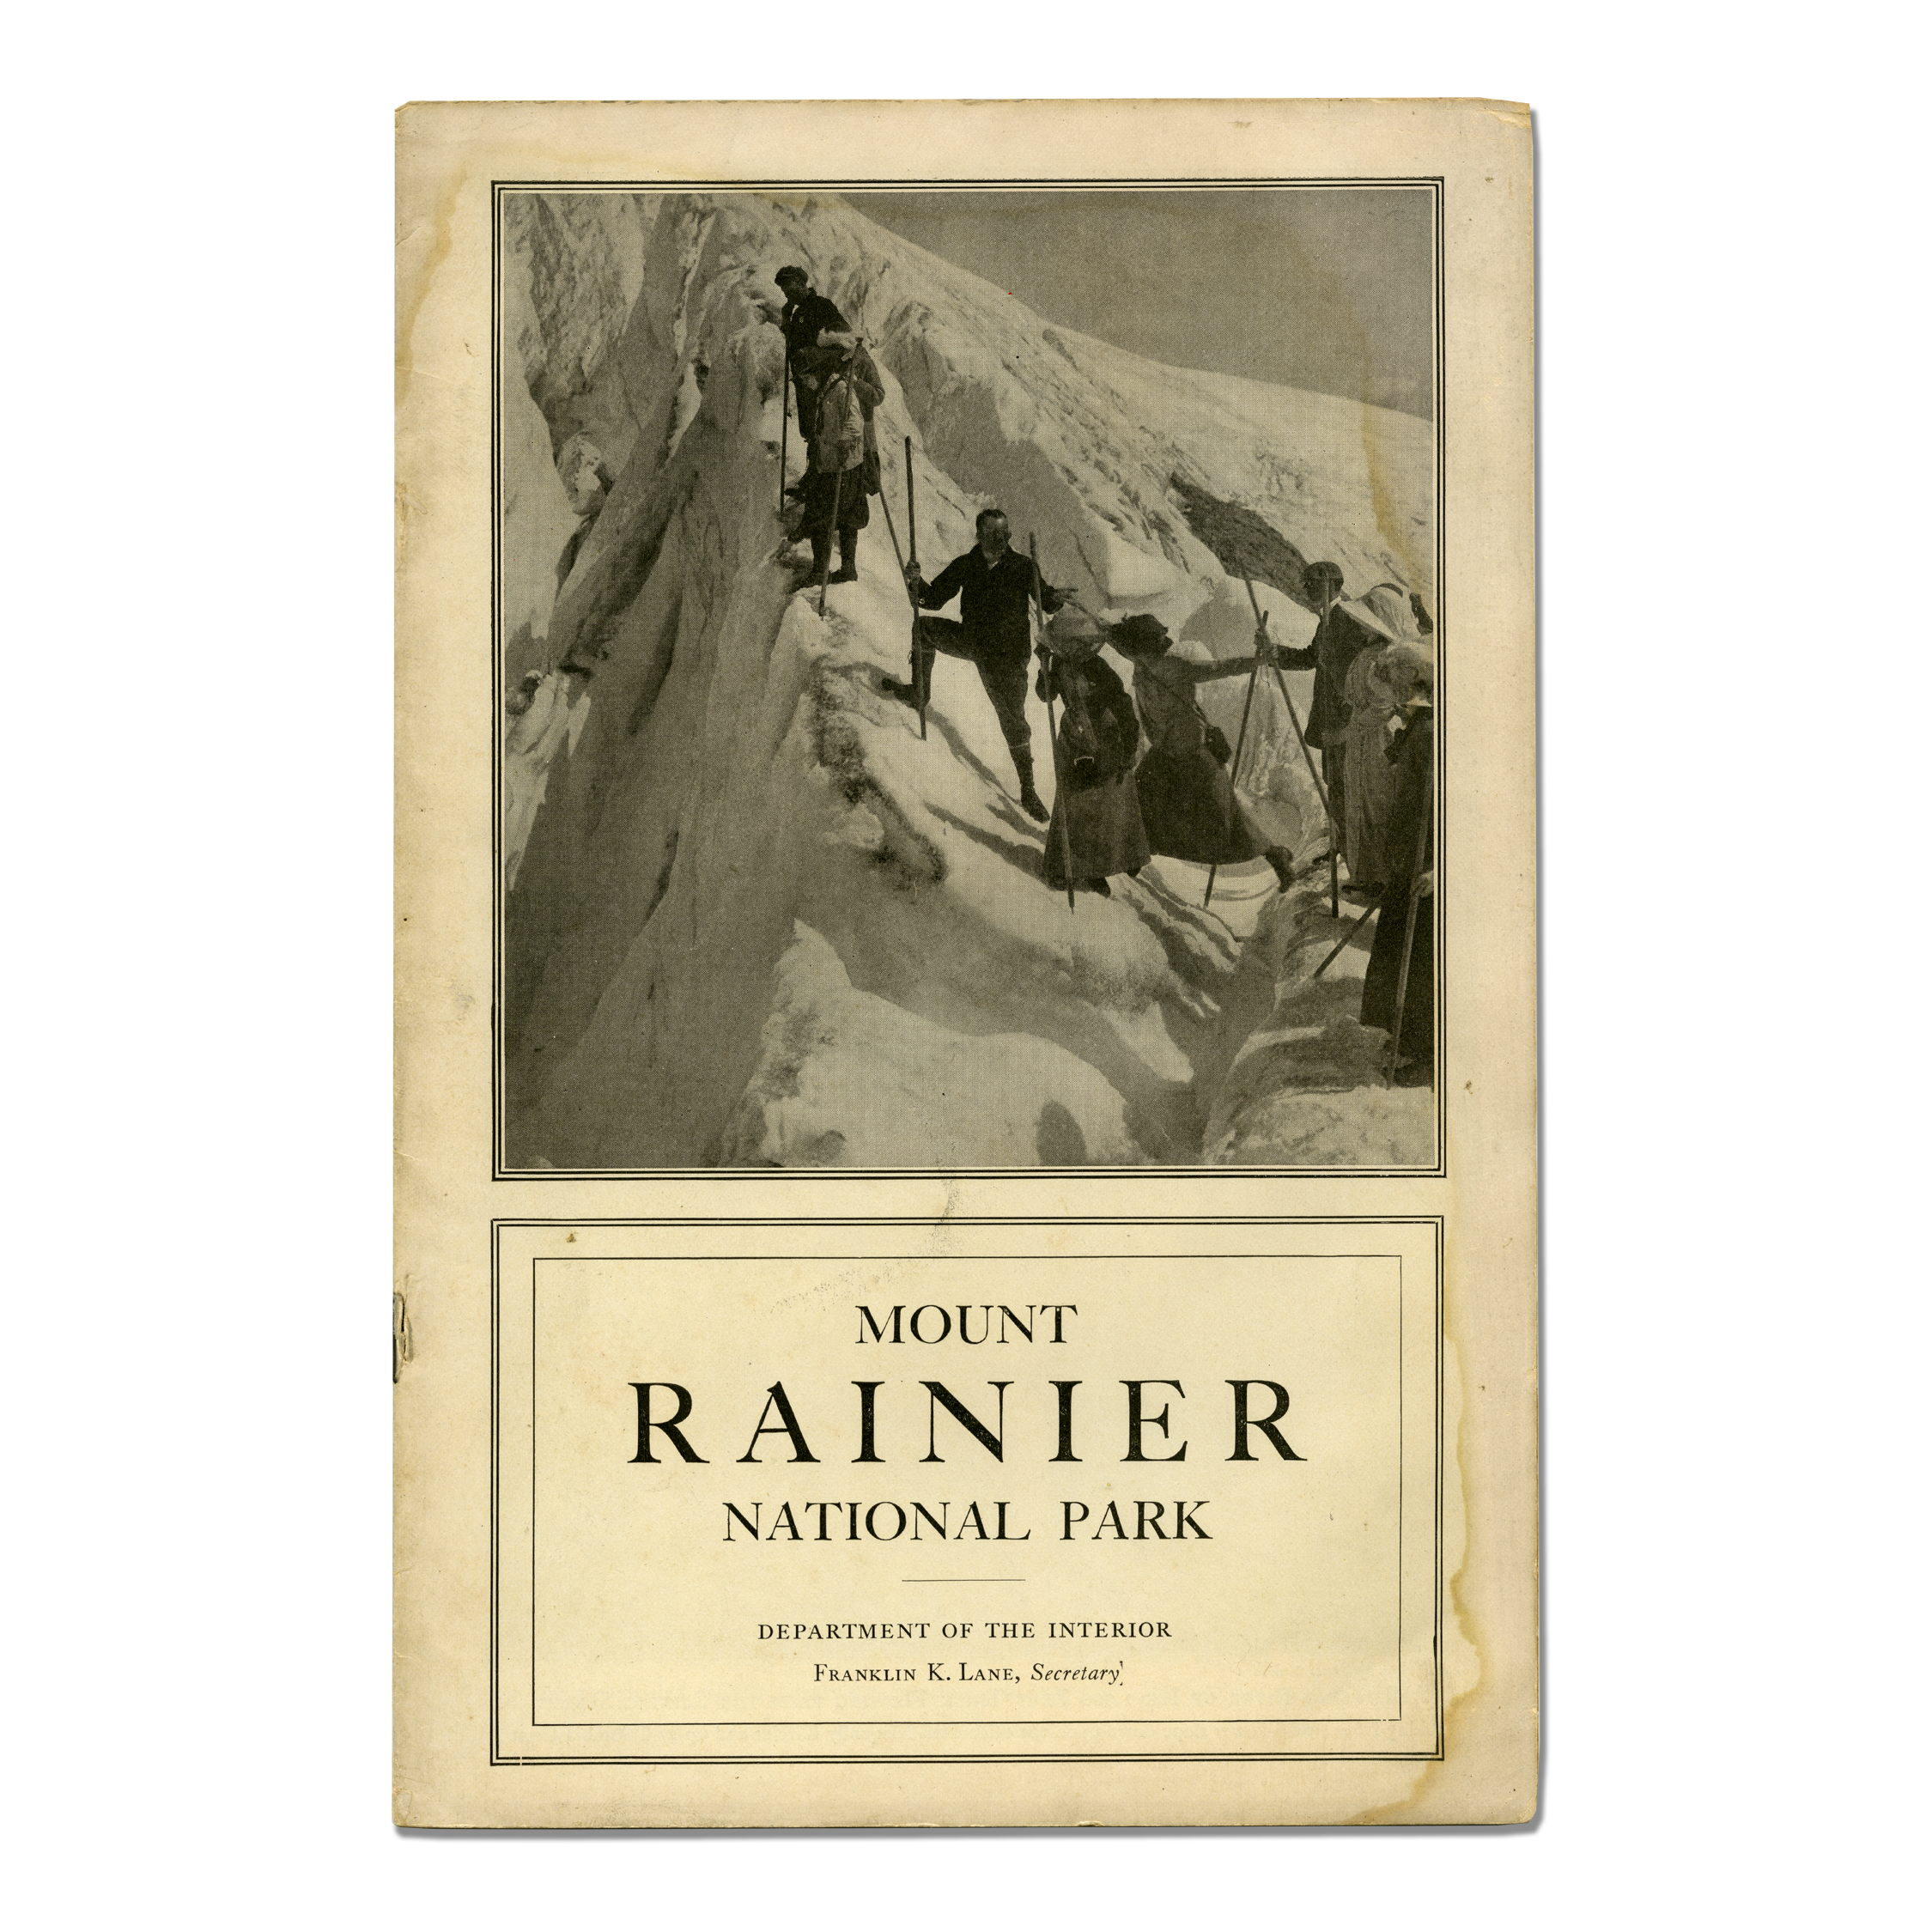 1916_mount_rainier_national_park_department_of_the_interior_portfolio.jpg